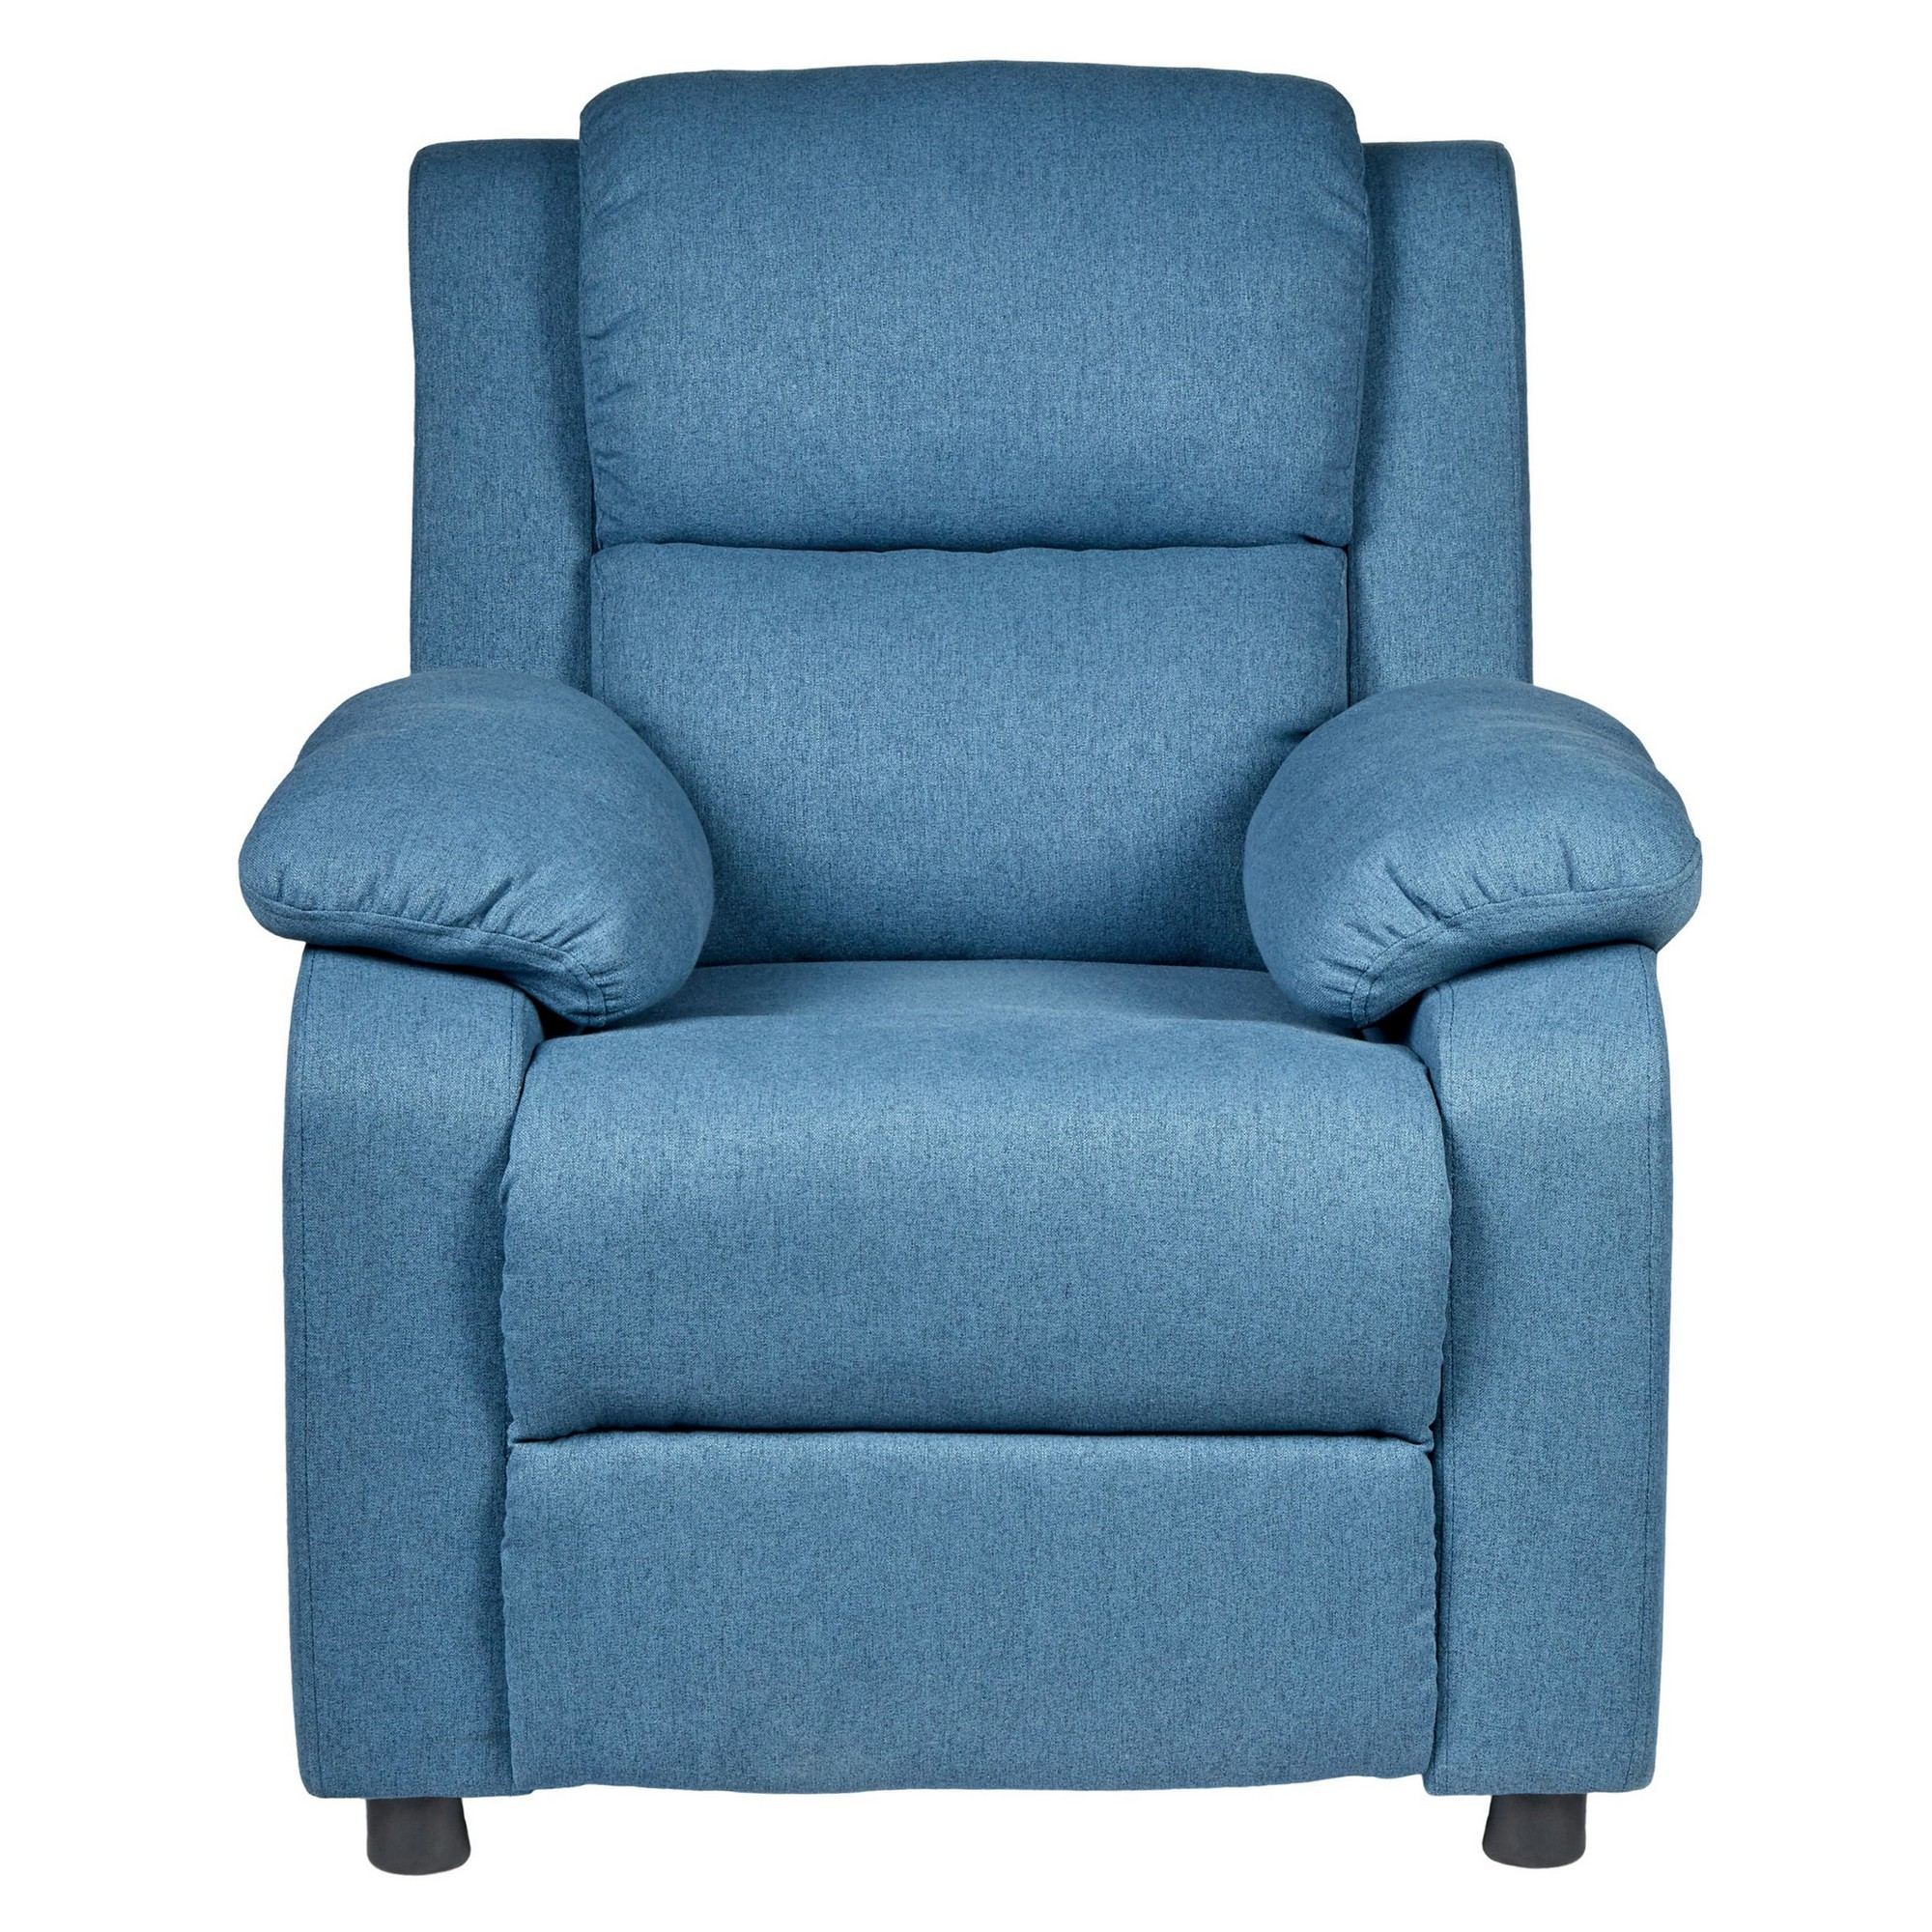 Erika Fabric Recliner Armchair